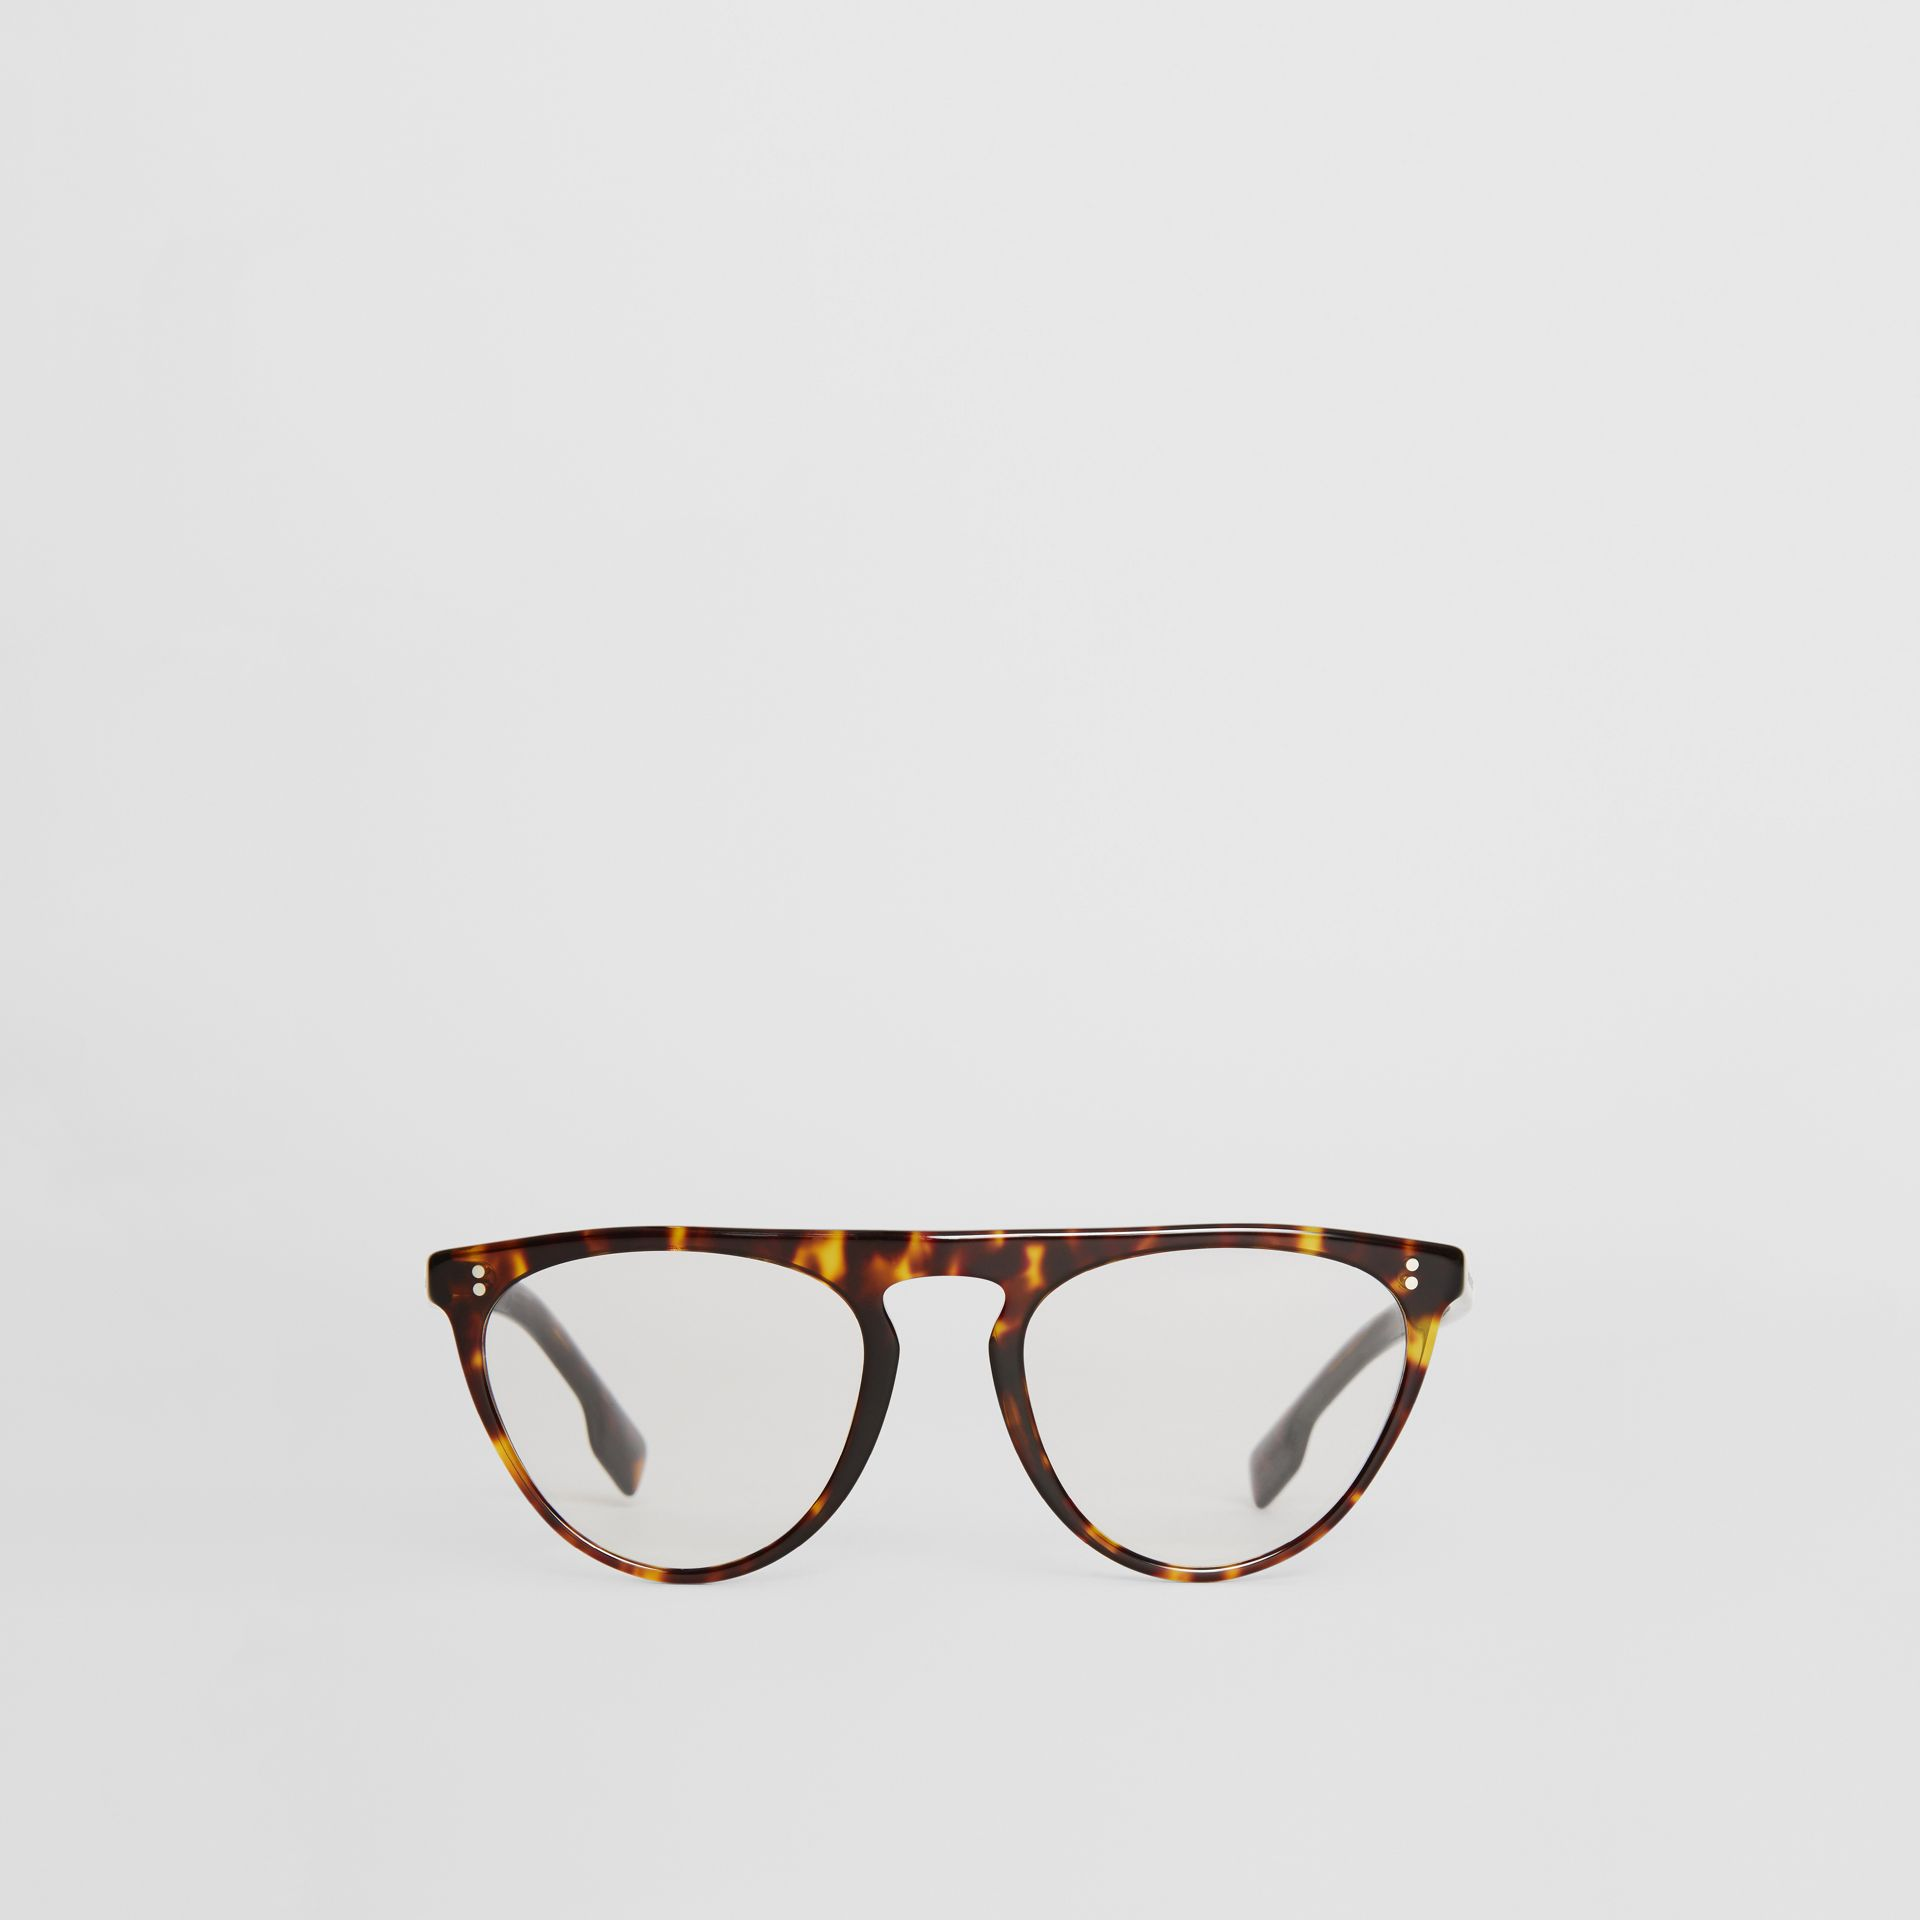 Keyhole D-shaped Optical Frames in Tortoise Shell - Men | Burberry Canada - gallery image 0